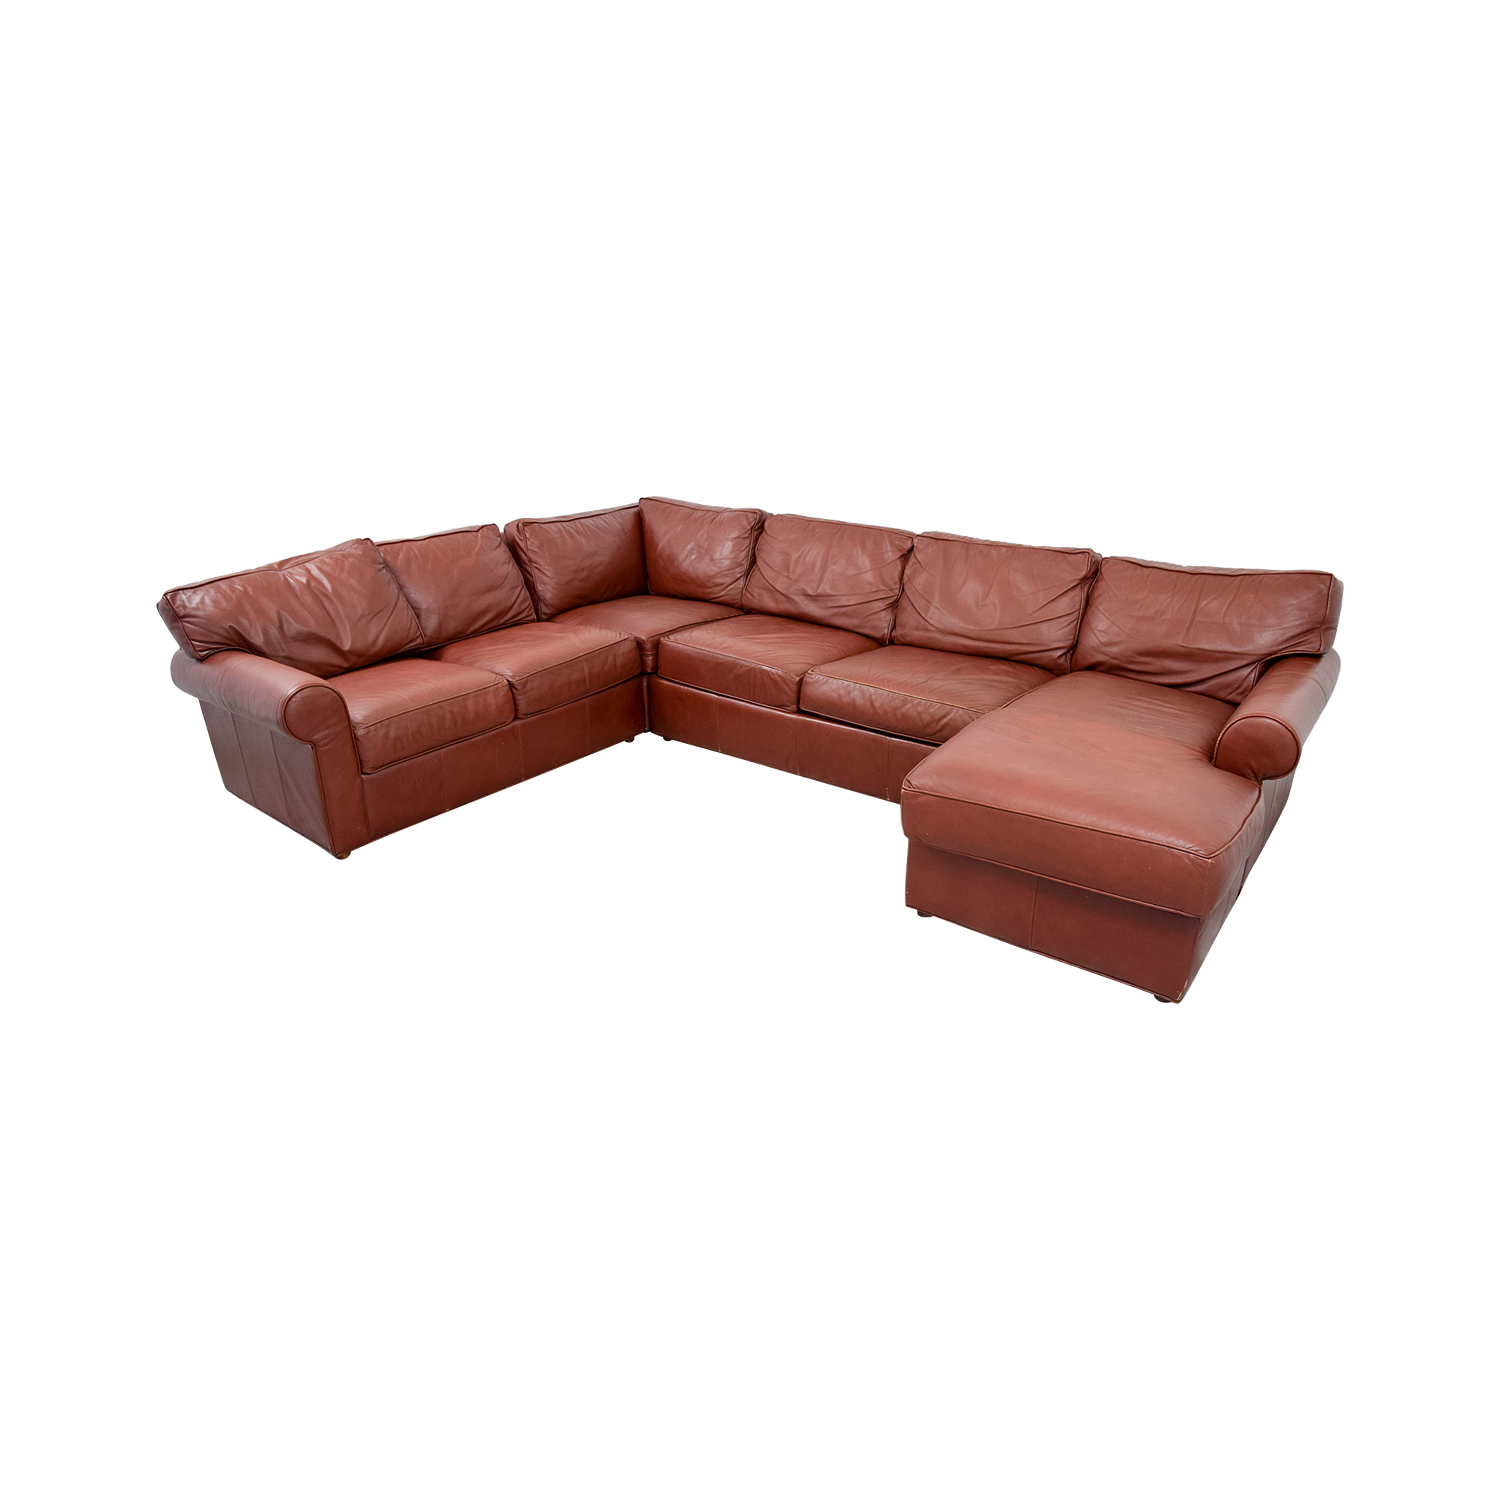 87 Off Ethan Allen Ethan Allen Burgundy Leather